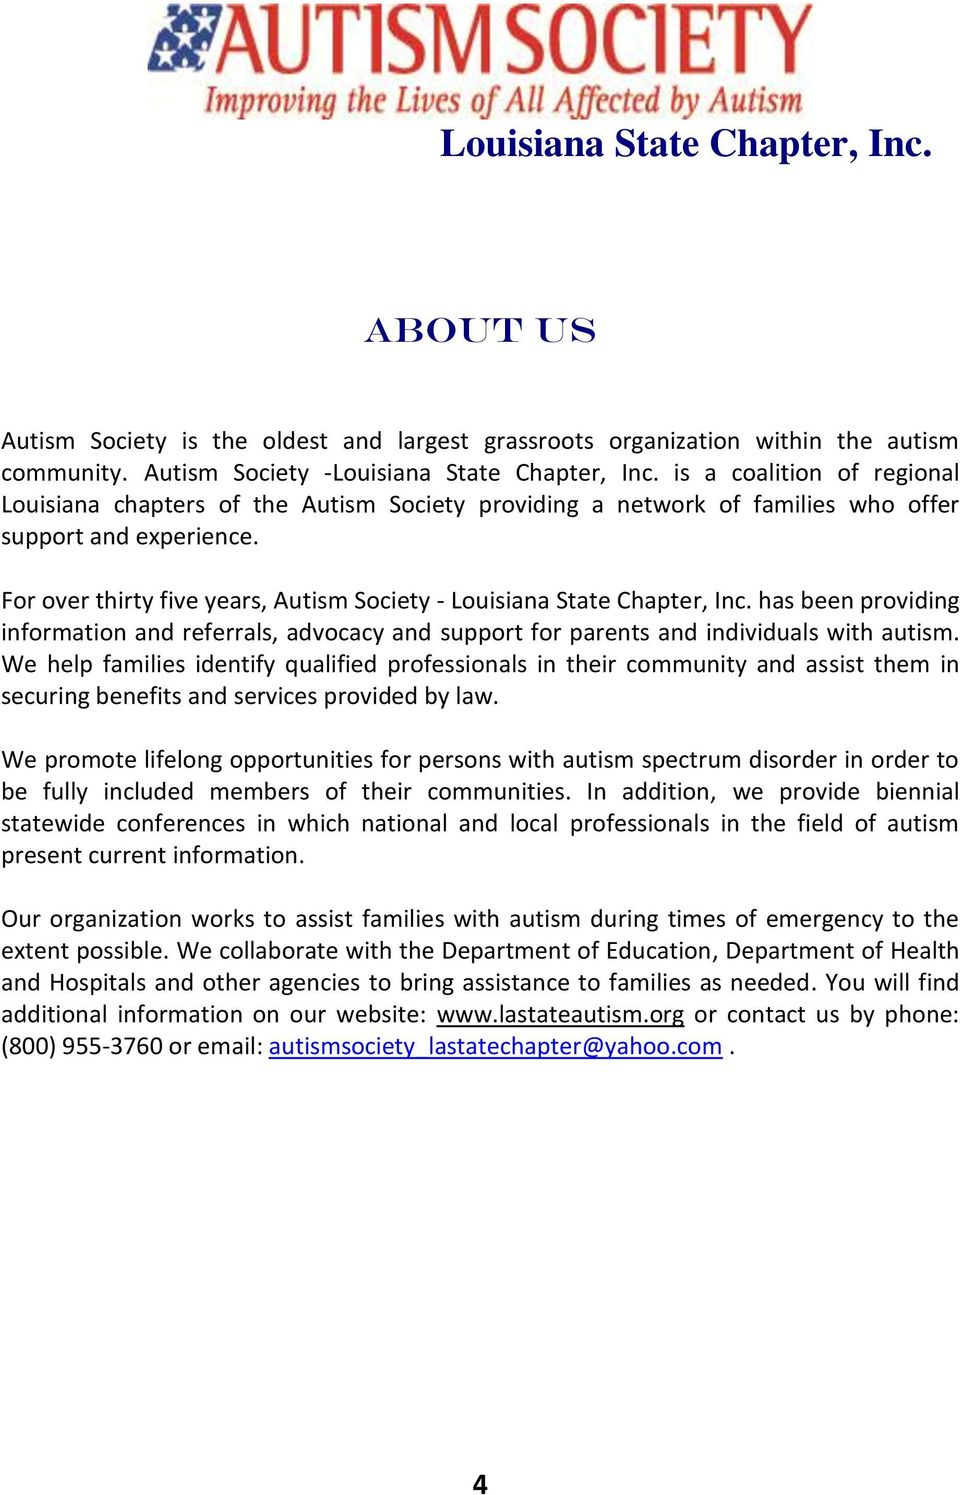 For over thirty five years, Autism Society - Louisiana State Chapter, Inc. has been providing information and referrals, advocacy and support for parents and individuals with autism.